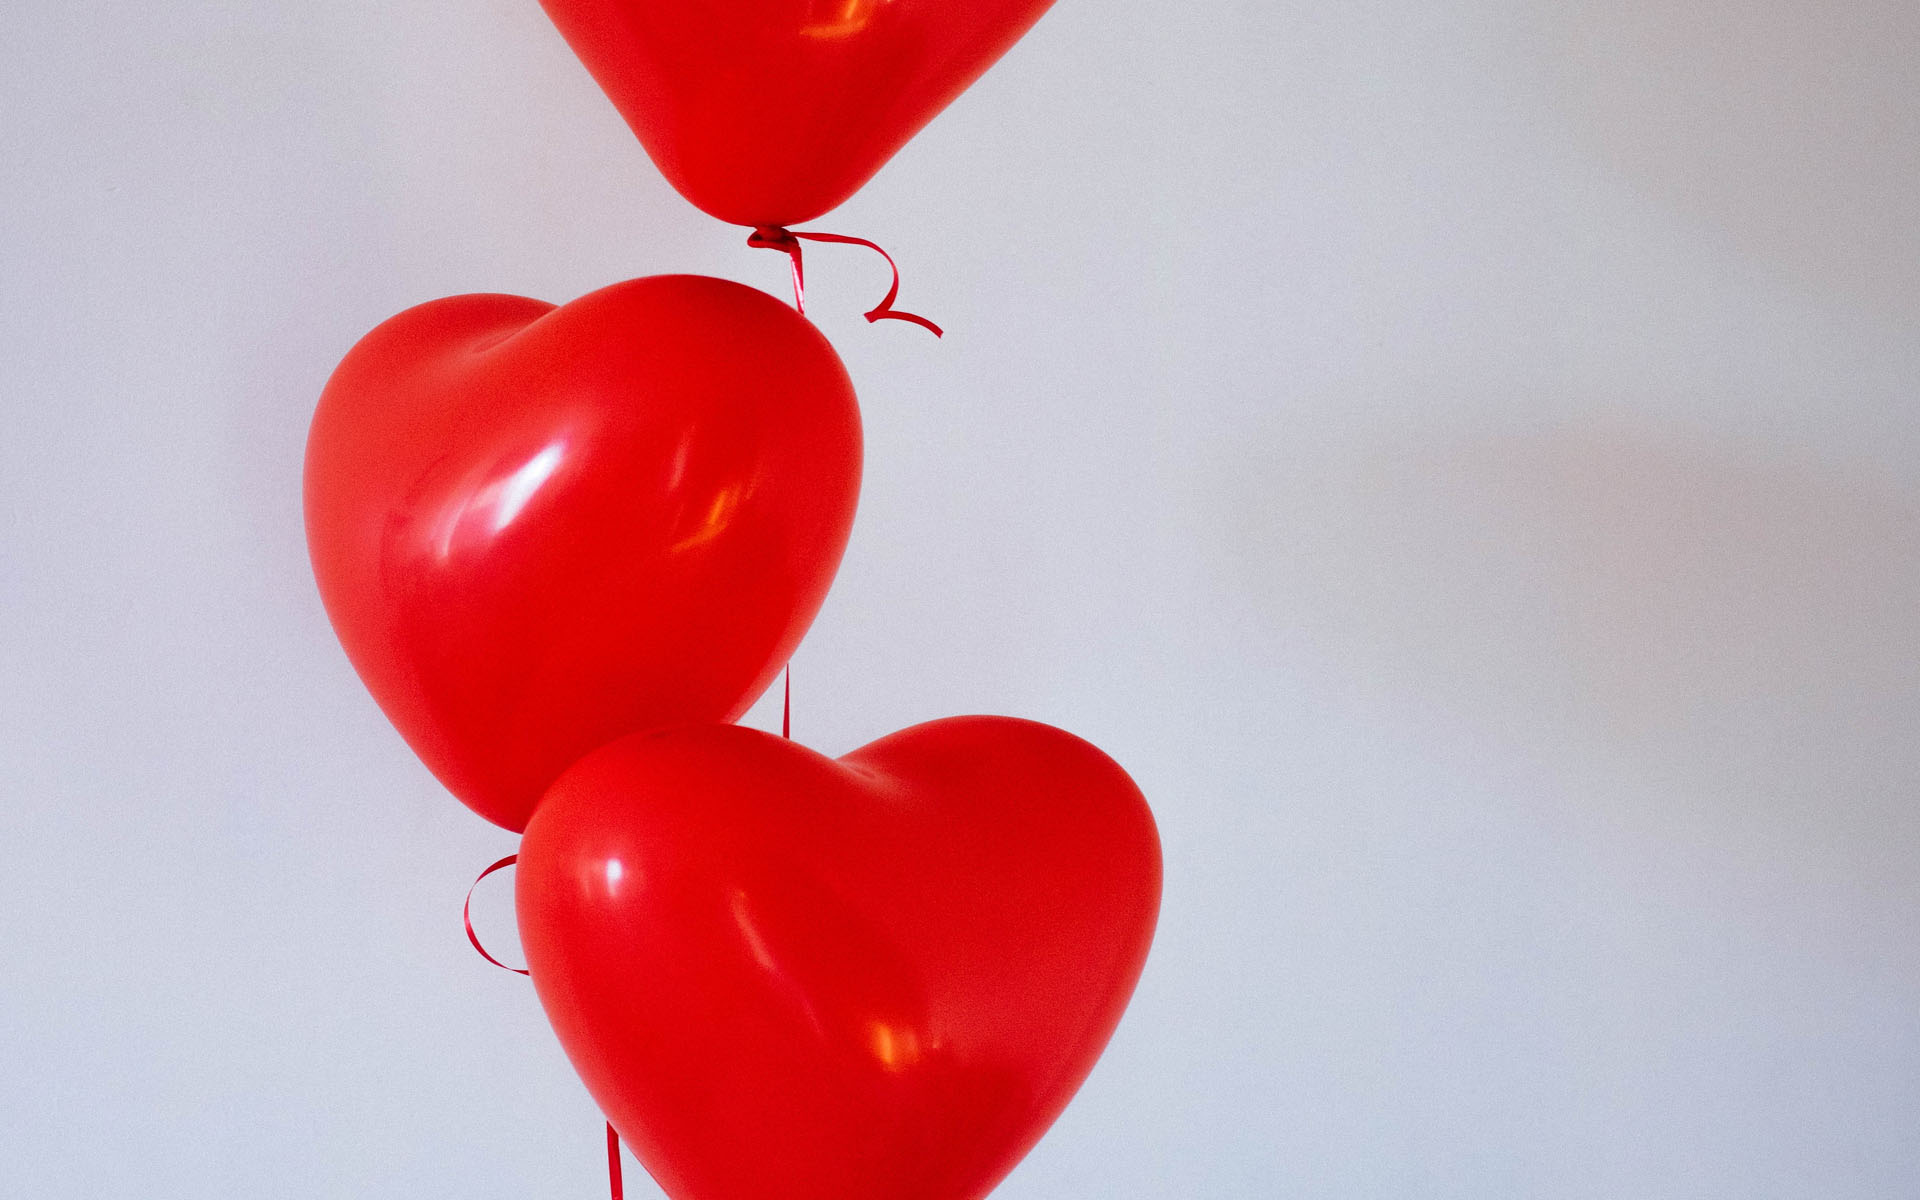 Red Heart Balloons HD Wallpaper